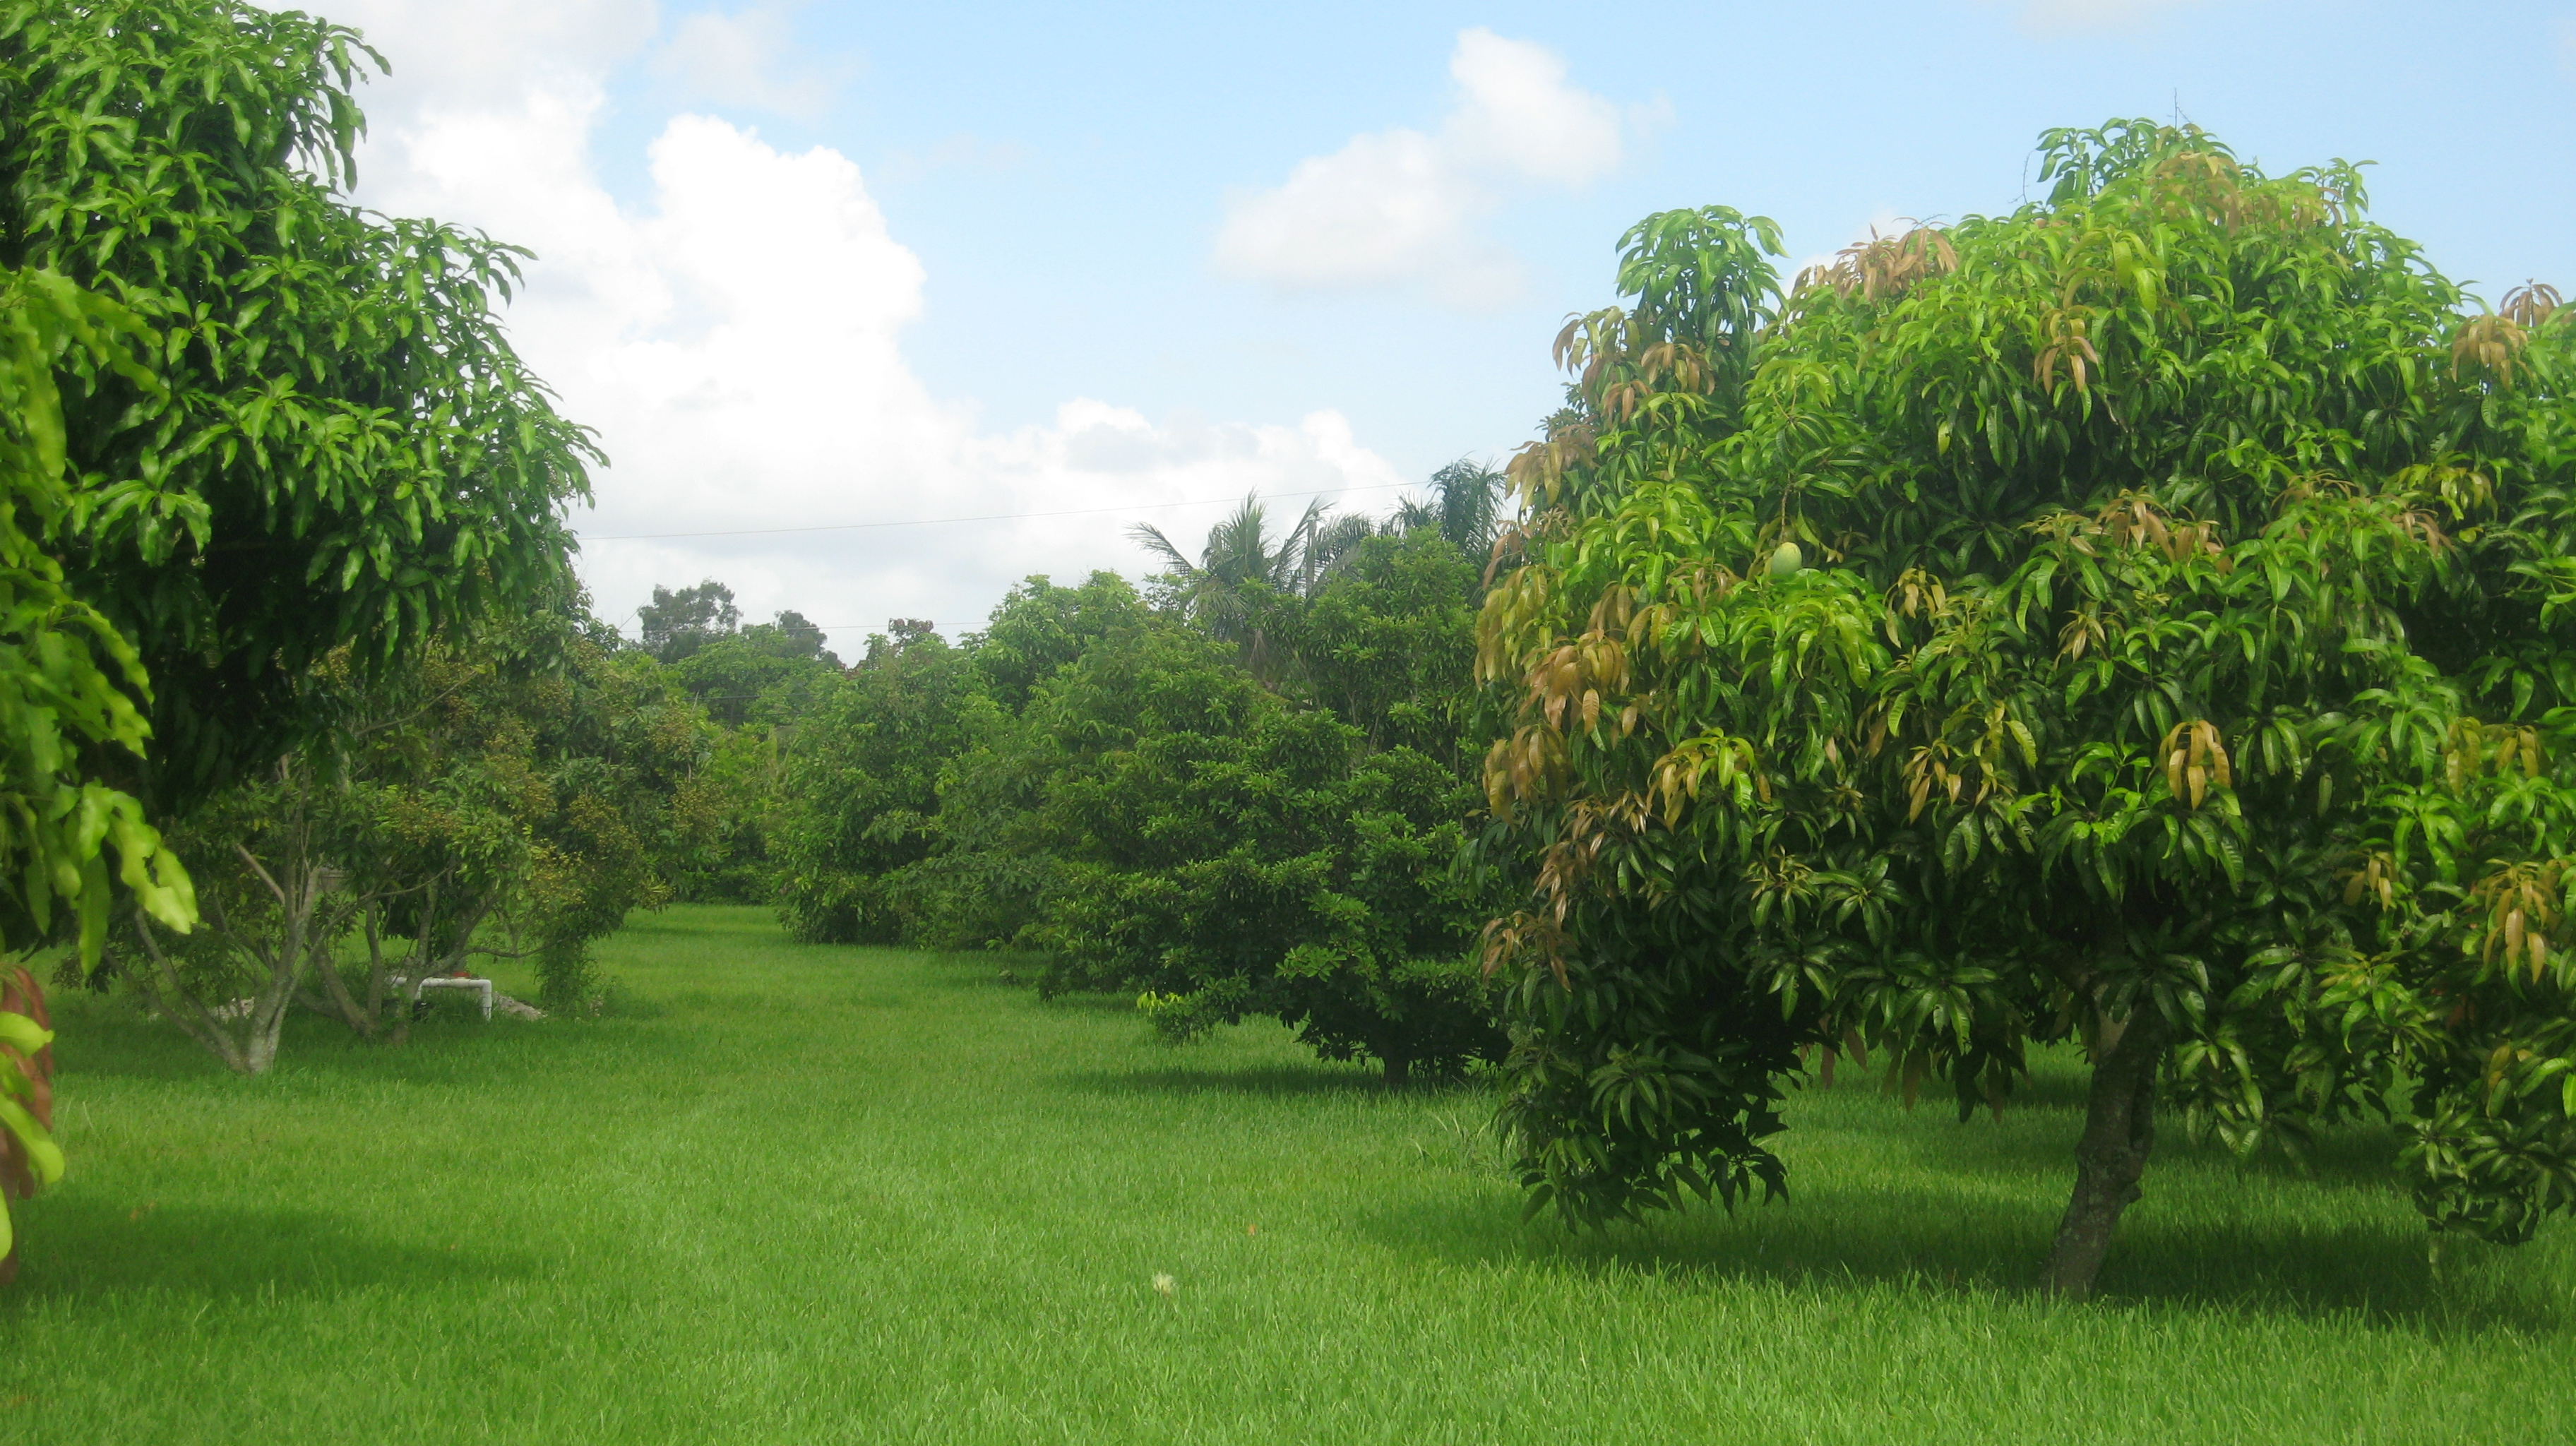 7.5 acres of tropical gardens and orchards at Yogi Hari's Ashram